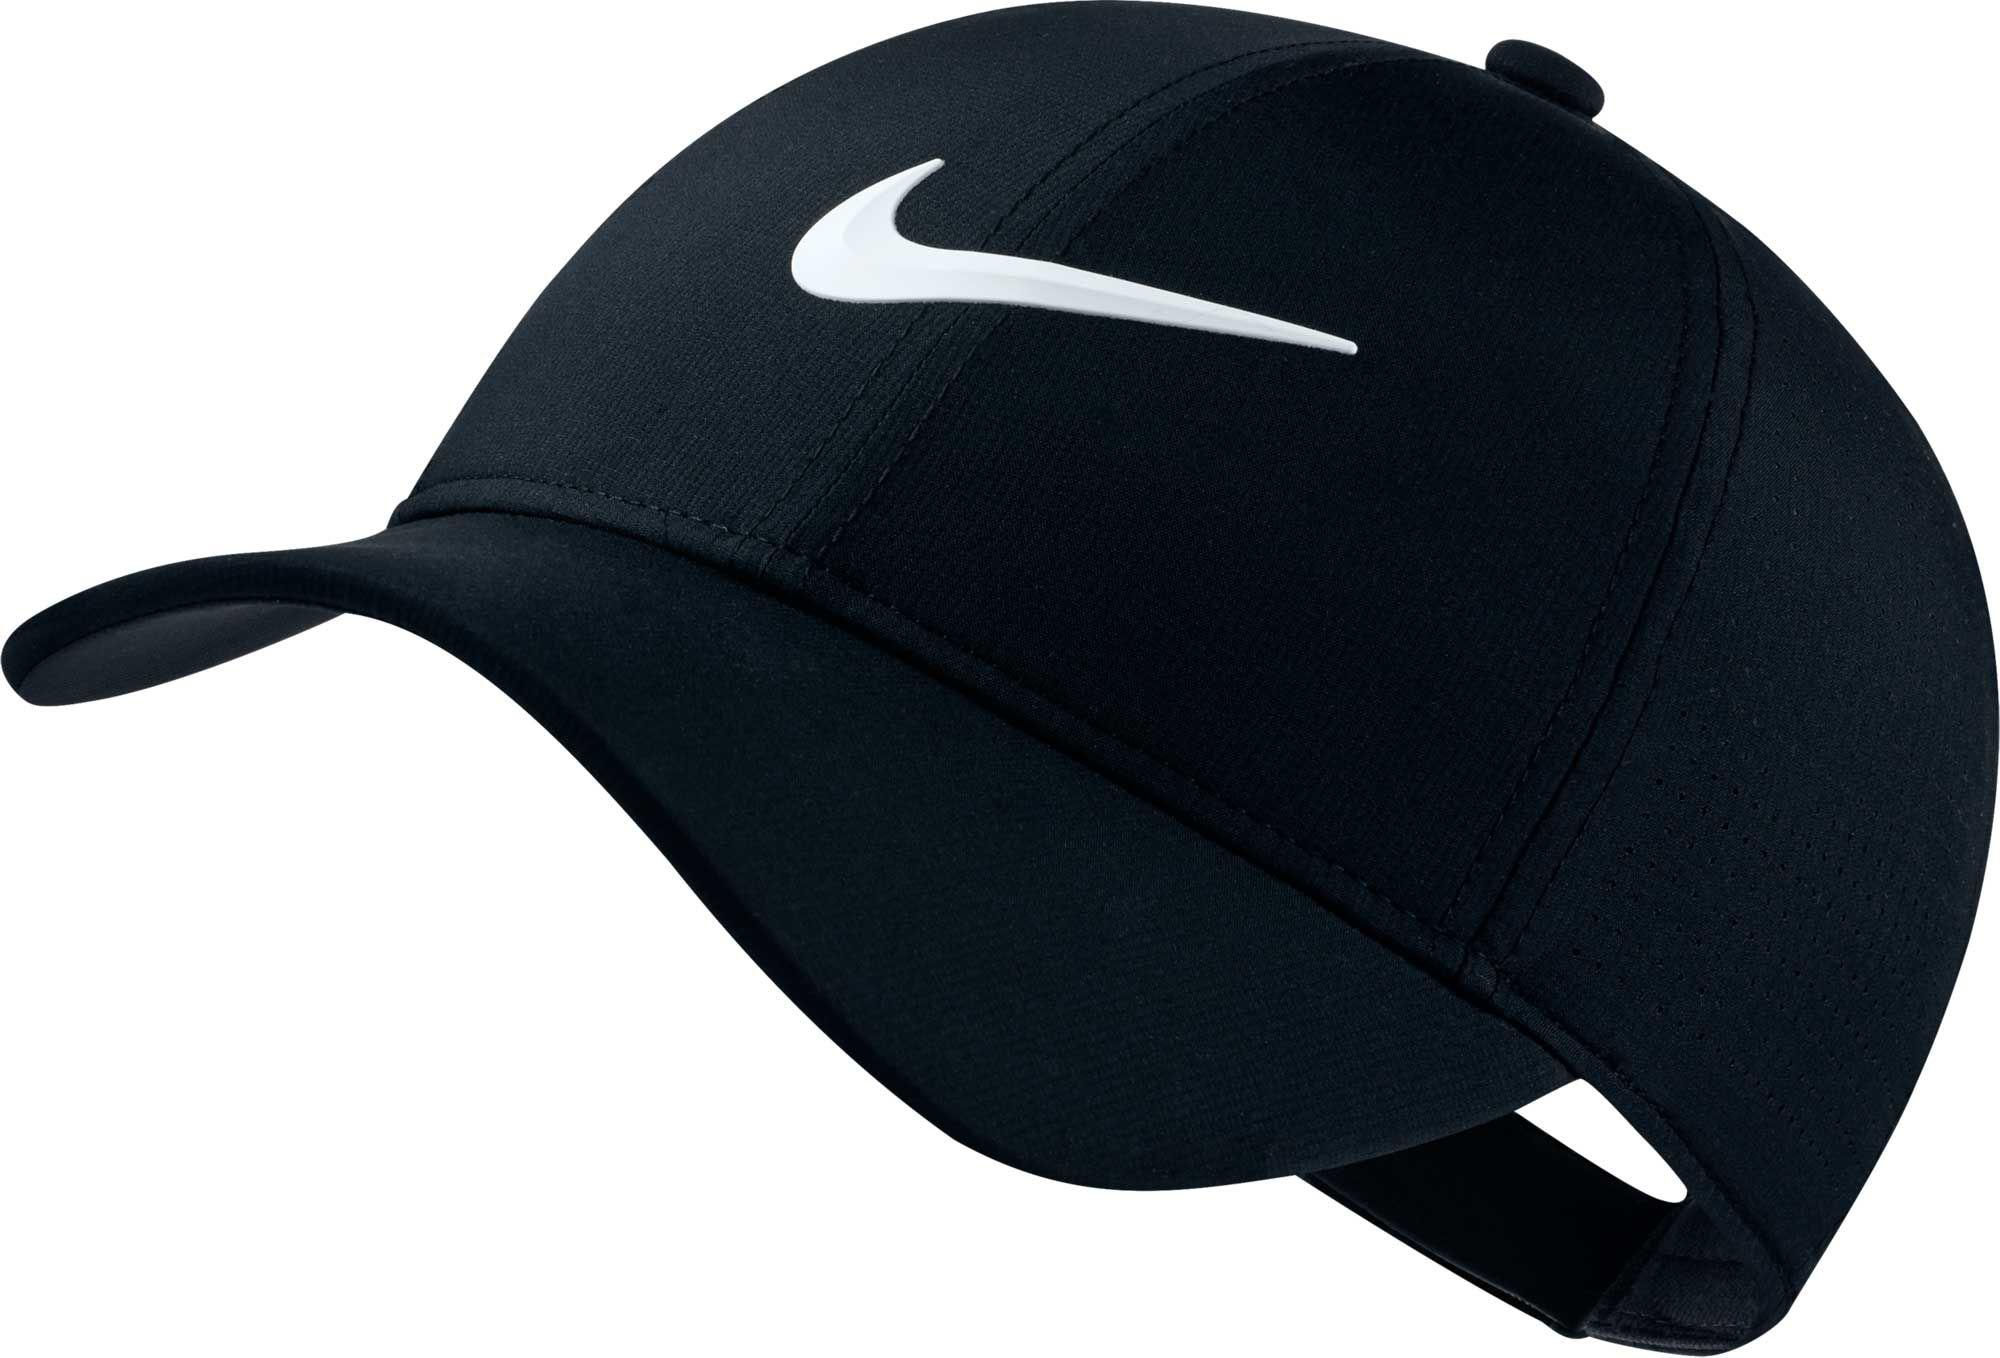 Lyst - Nike 2018 Aerobill Legacy91 Perforated Golf Hat in Black 6e0b78349257